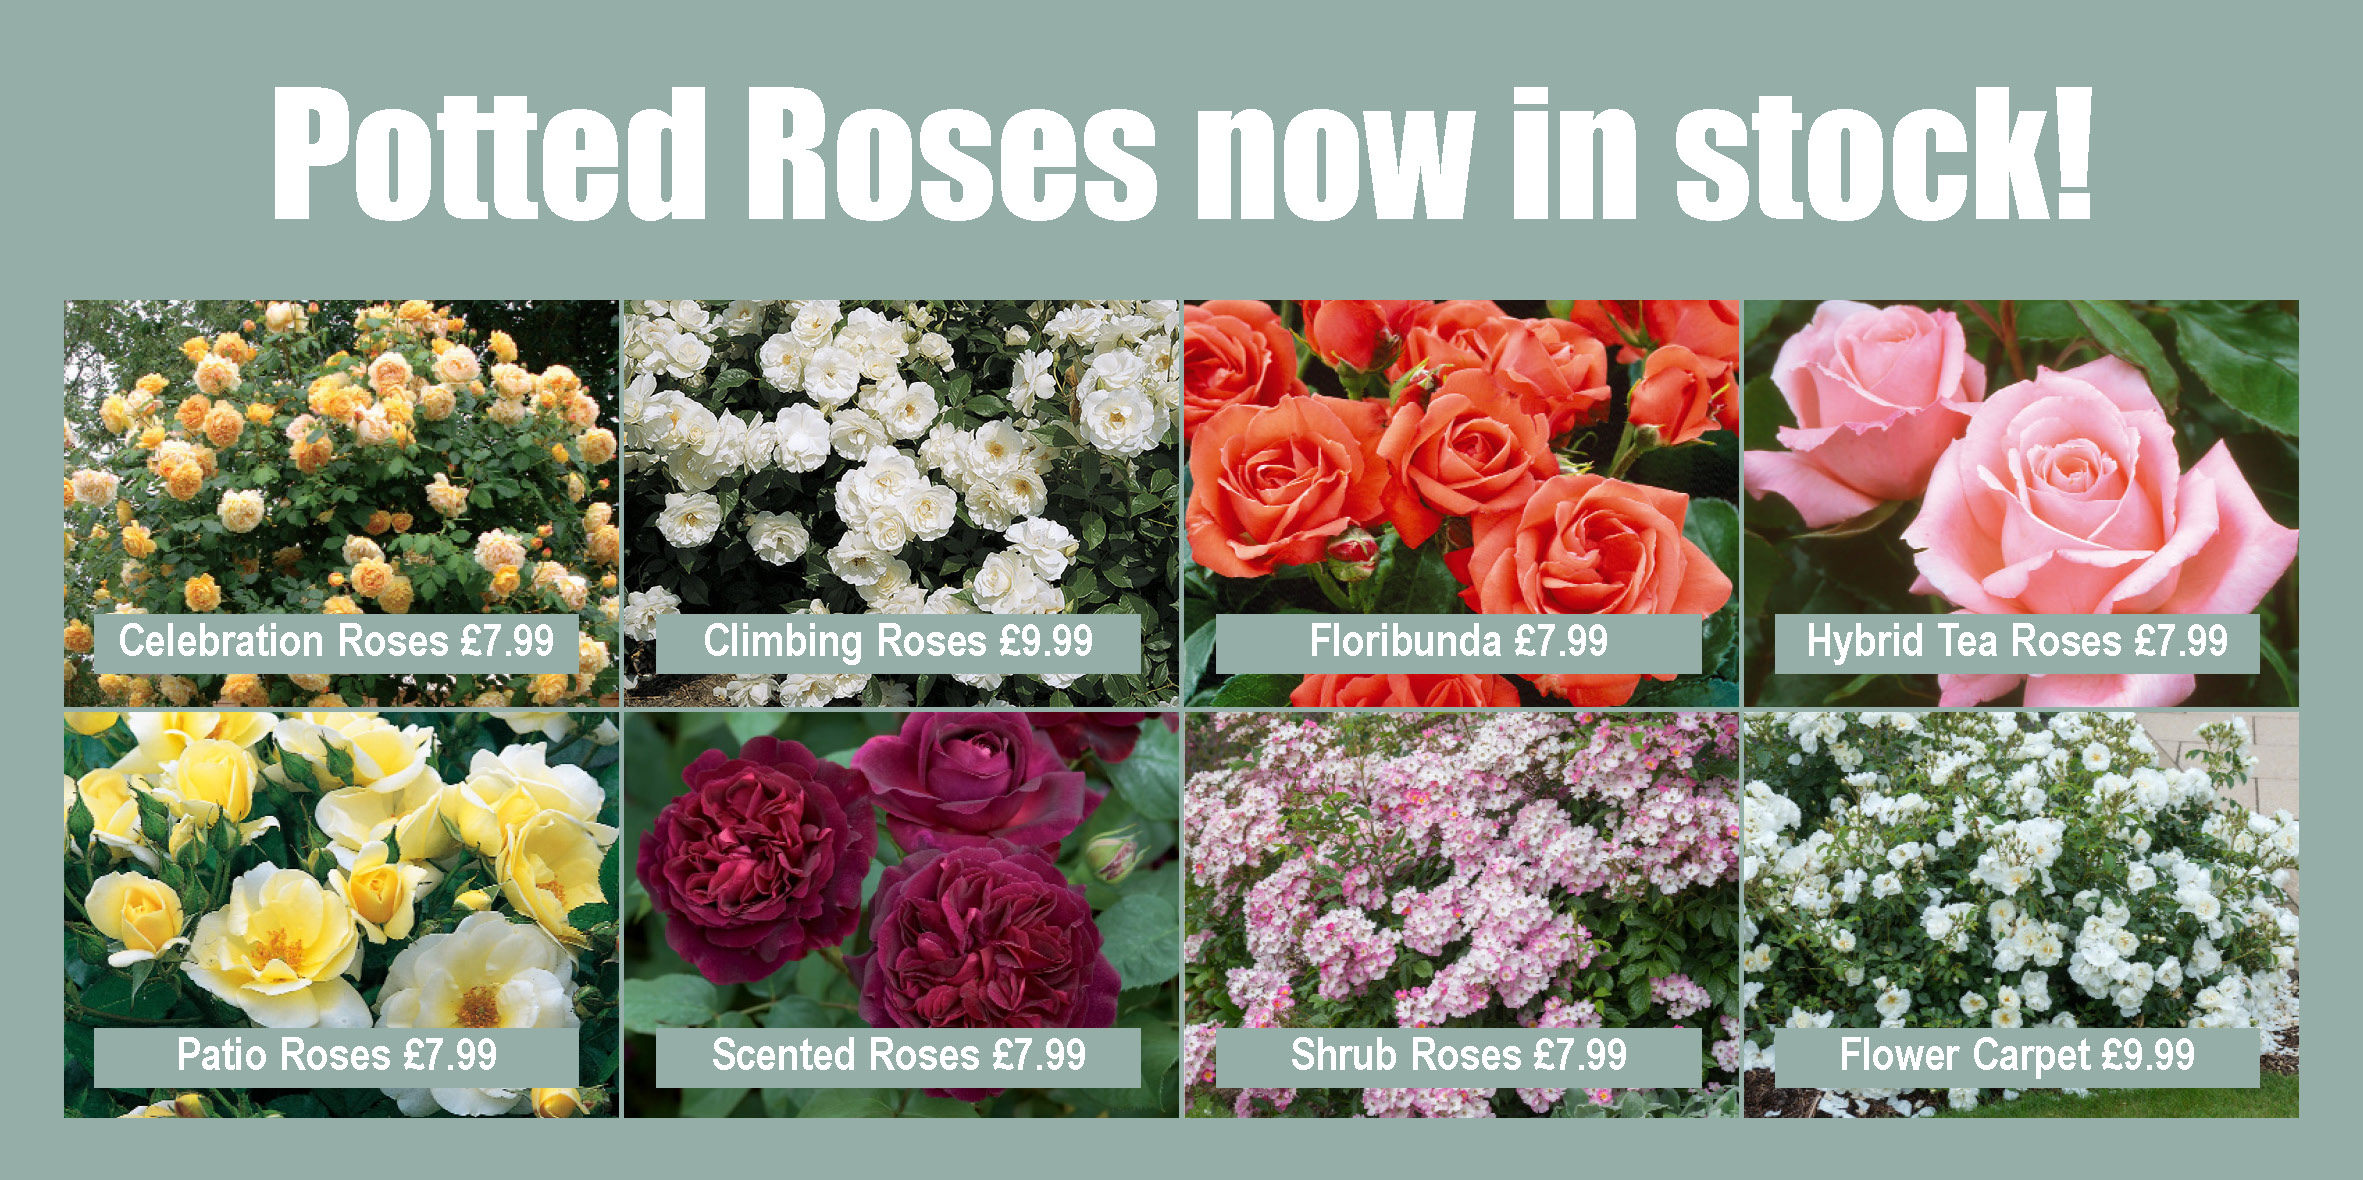 Potted Roses Website Graphic